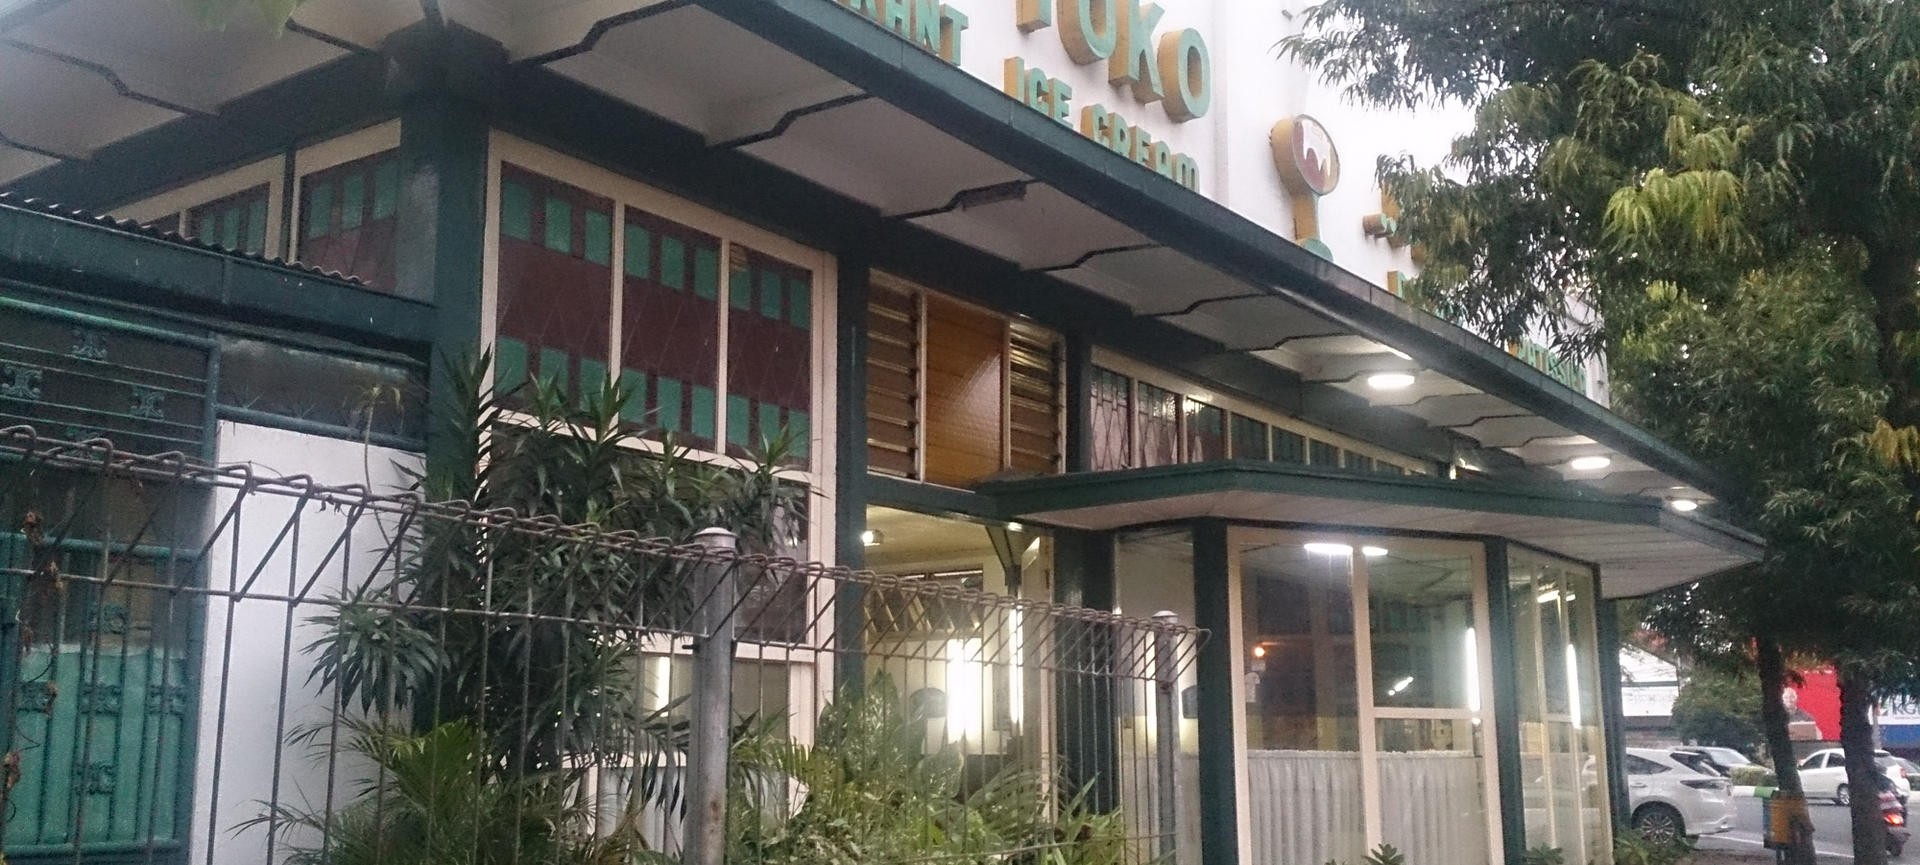 Historical Gems From Mid 20th Century In Malang, East Java